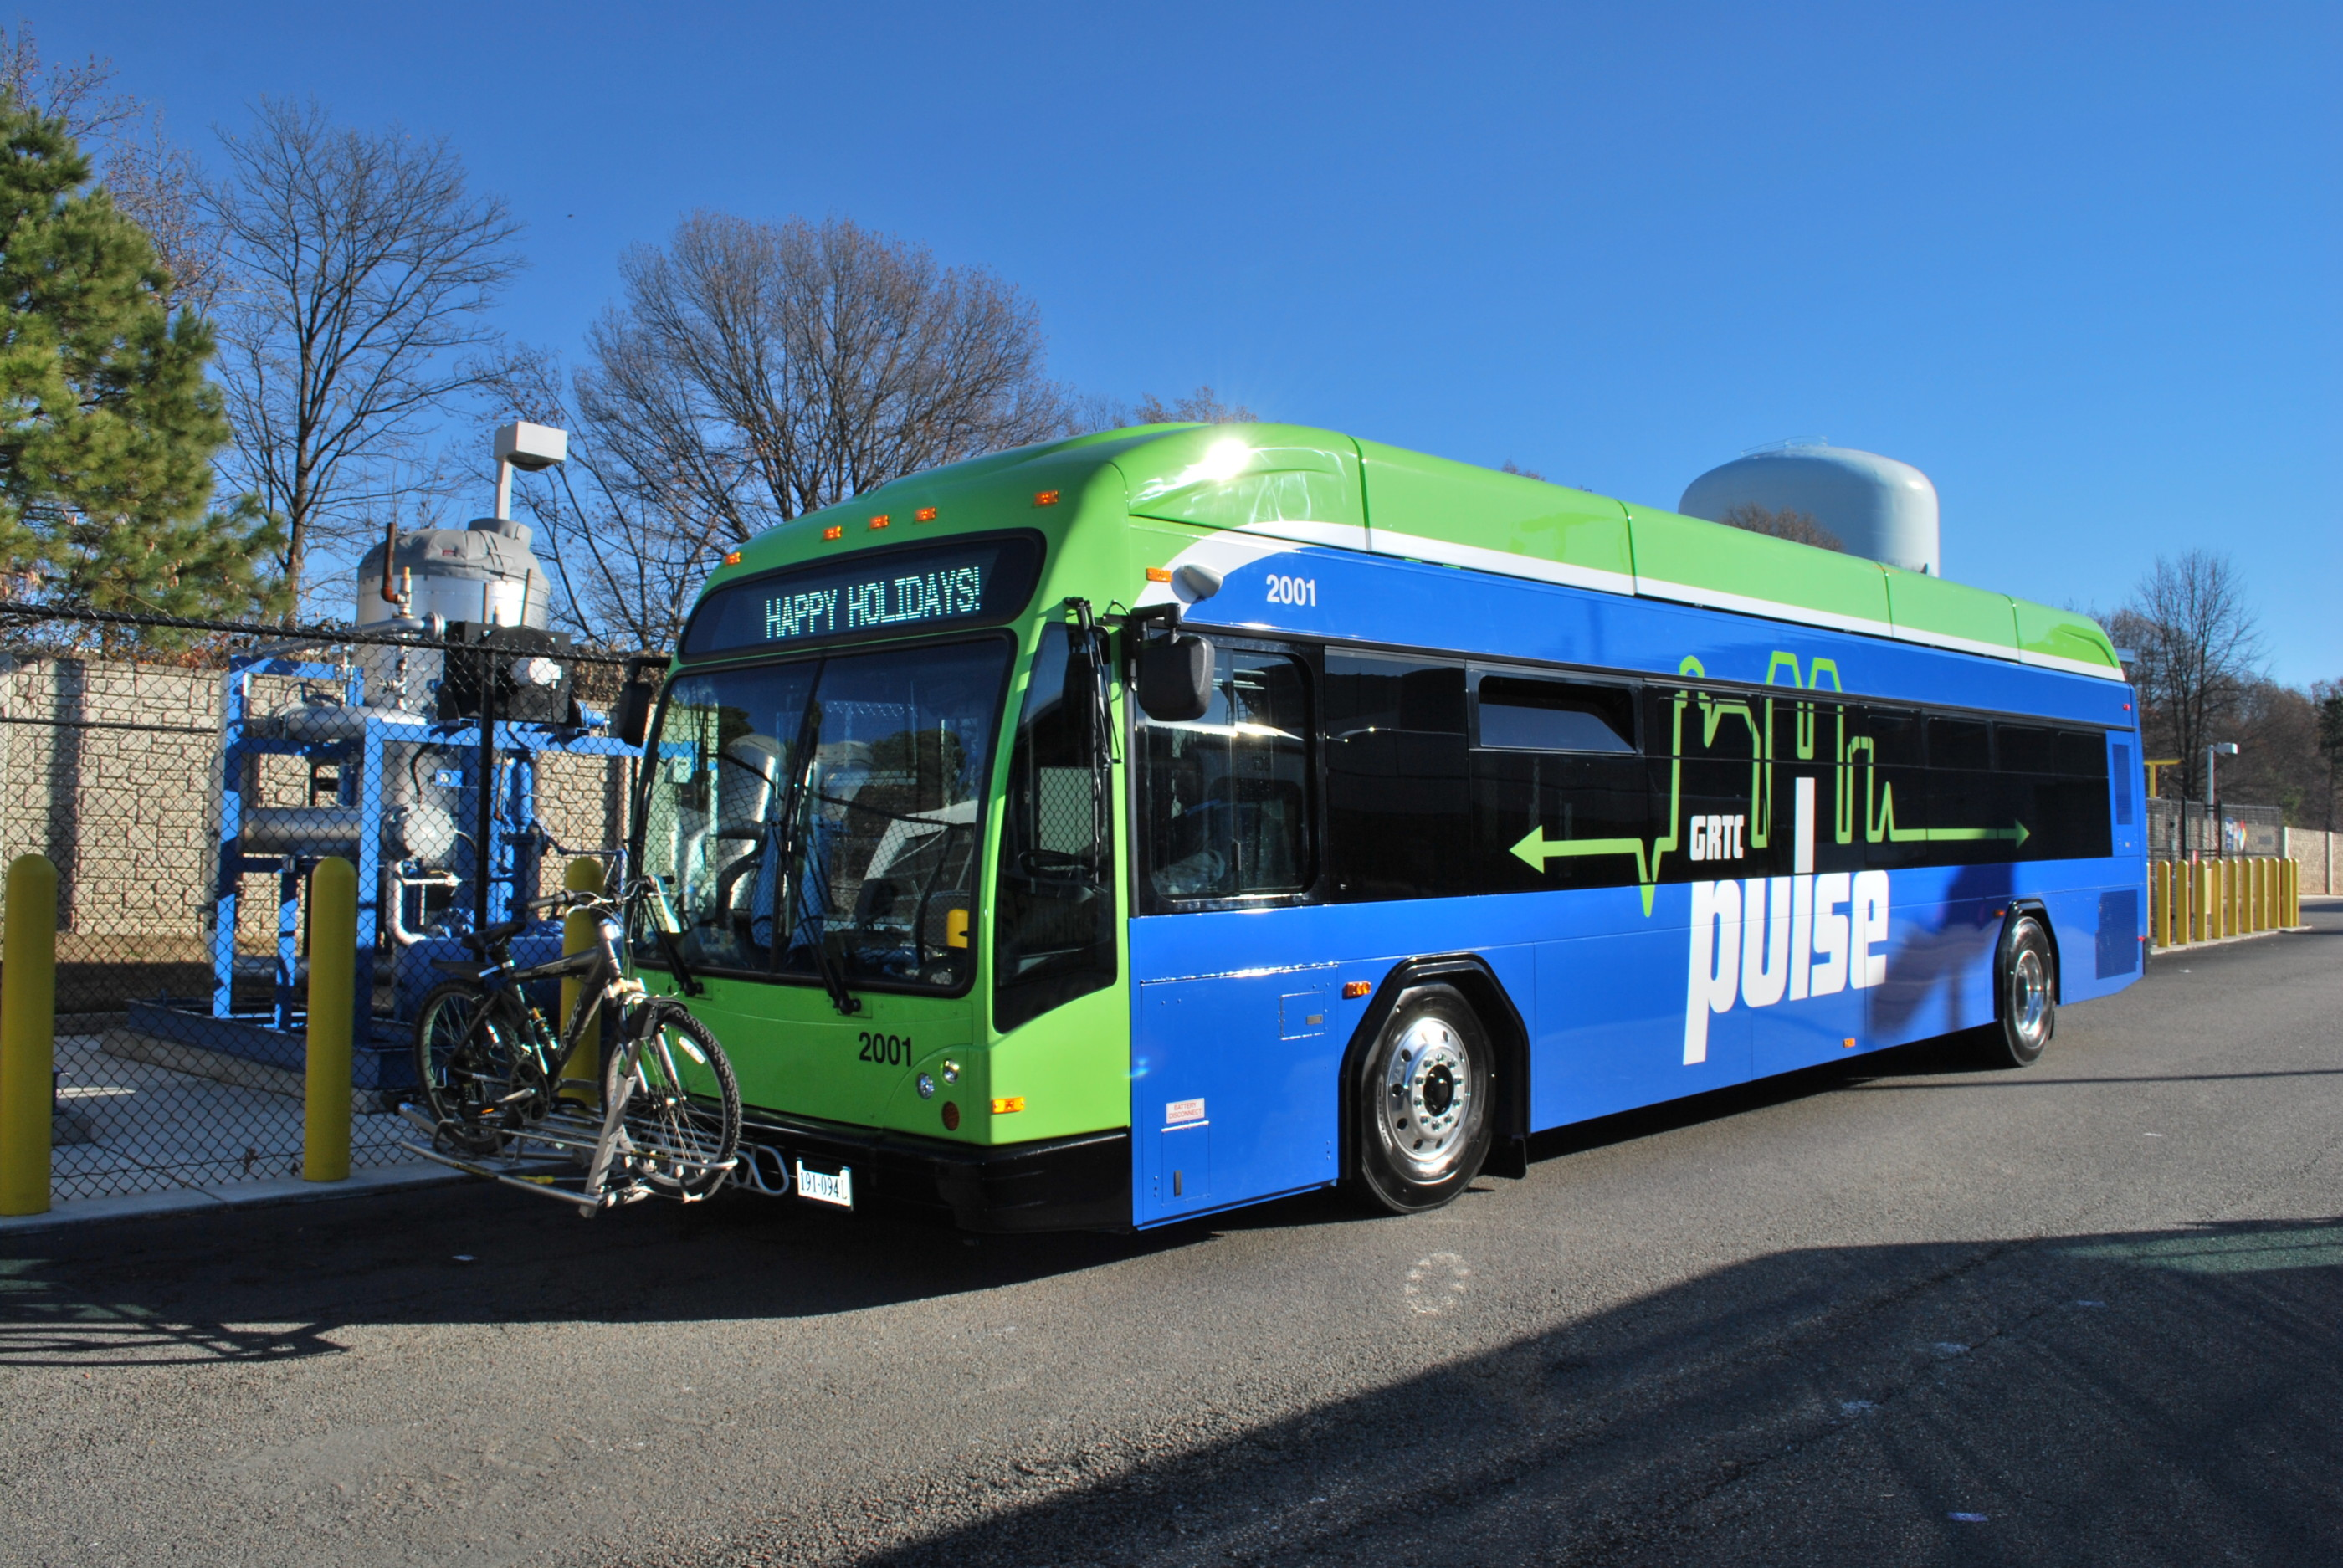 GRTC Pulse: Bus Rapid Transit